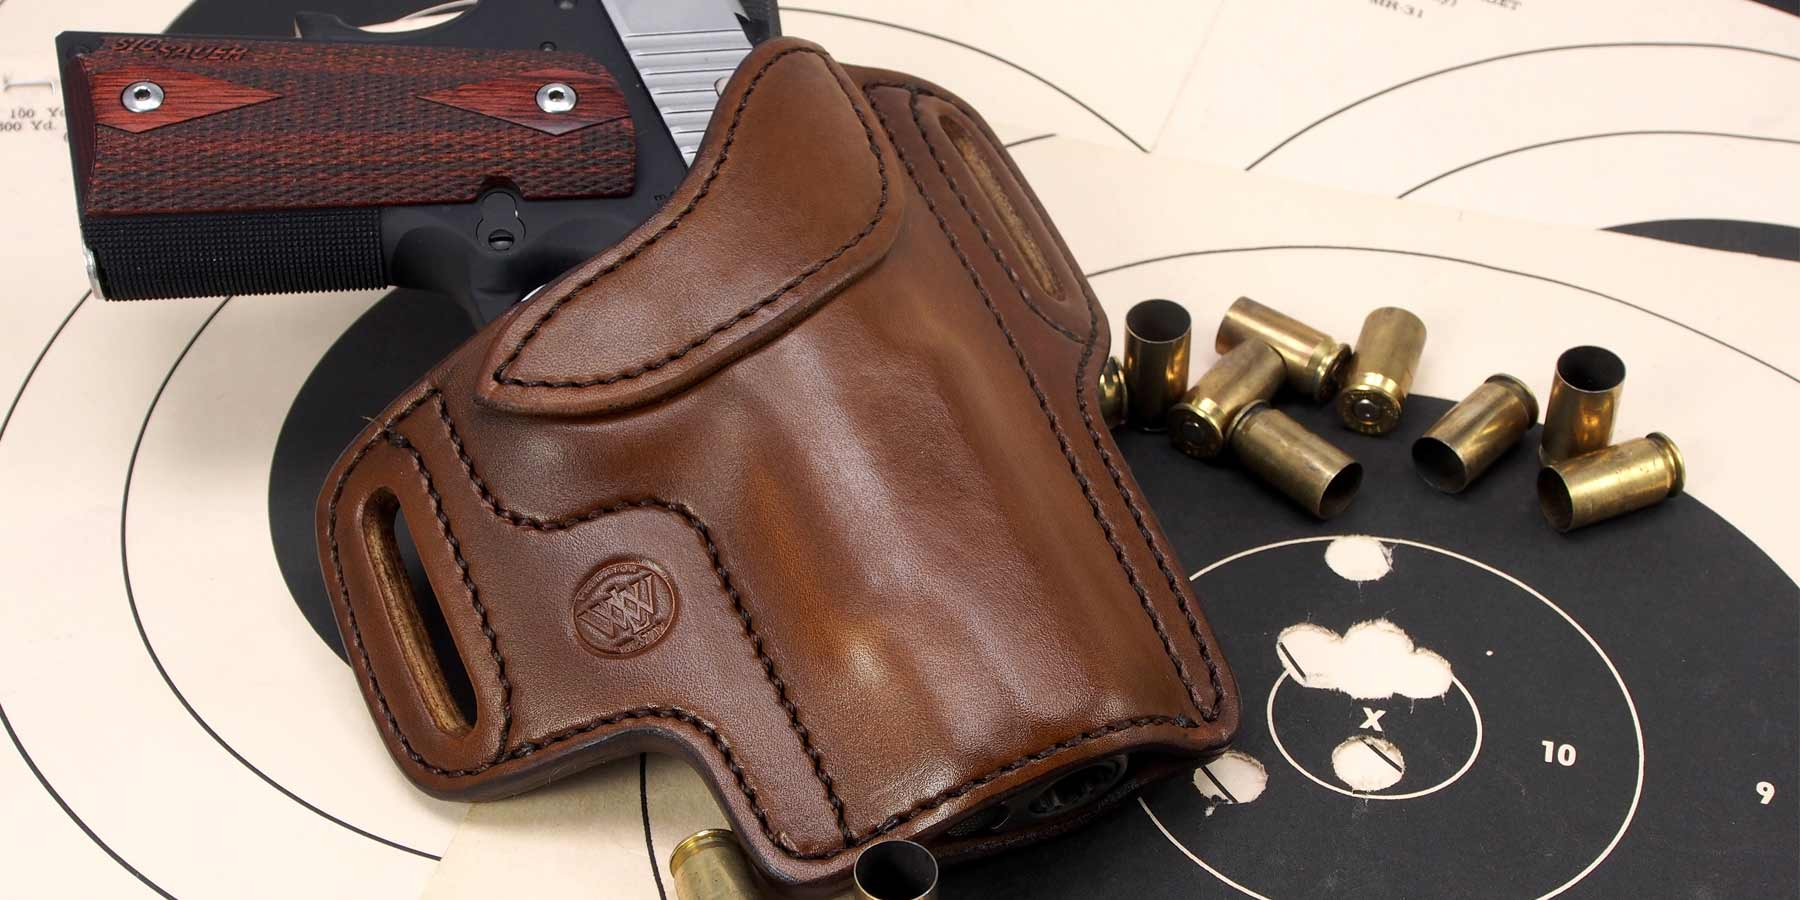 Colt Officer 1911 Compact IWB Leather In Waistband Concealed Carry Holster TAN